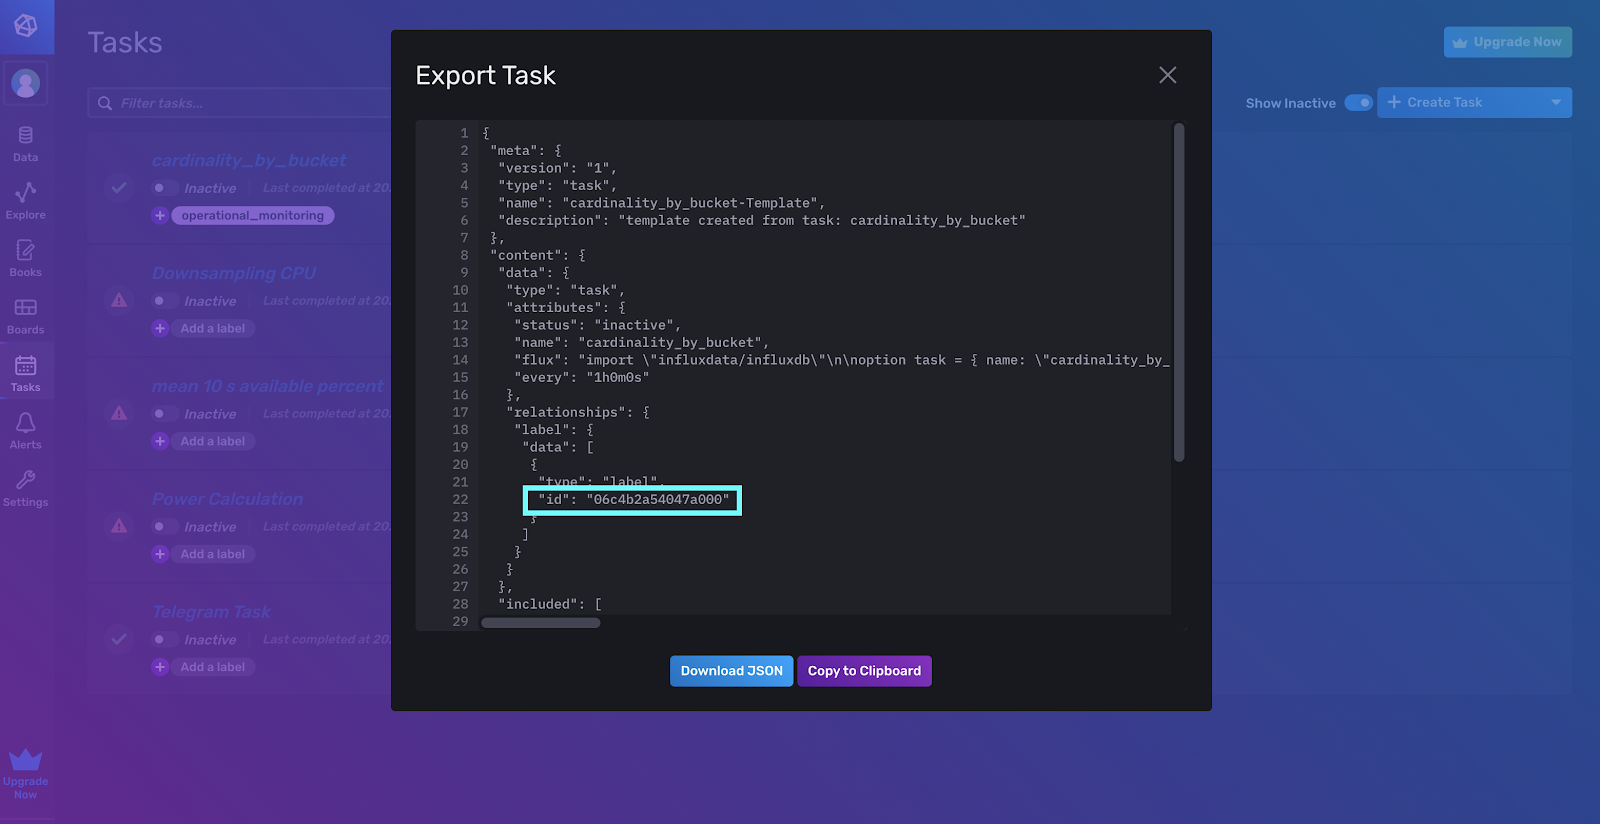 You can gather your Task ID from the Task JSON